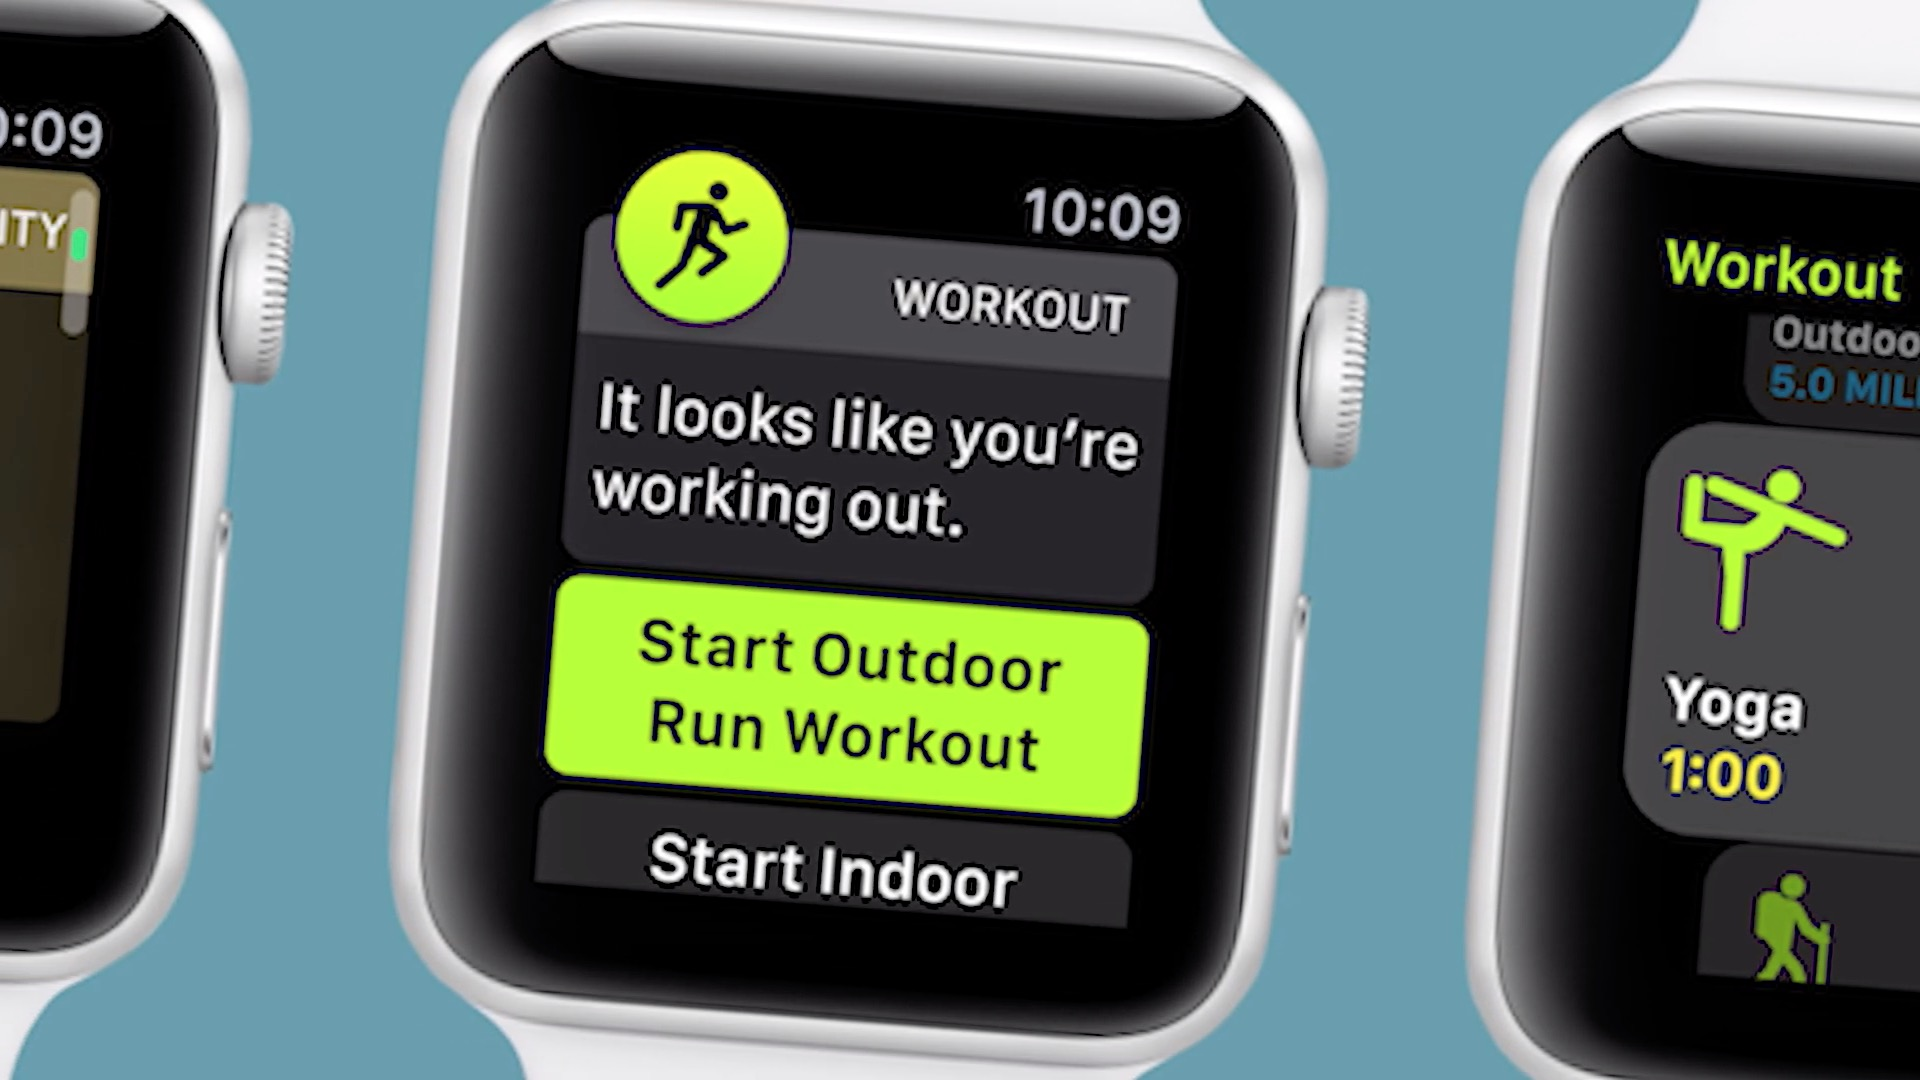 Apple Watch Auto Tracking Workouts